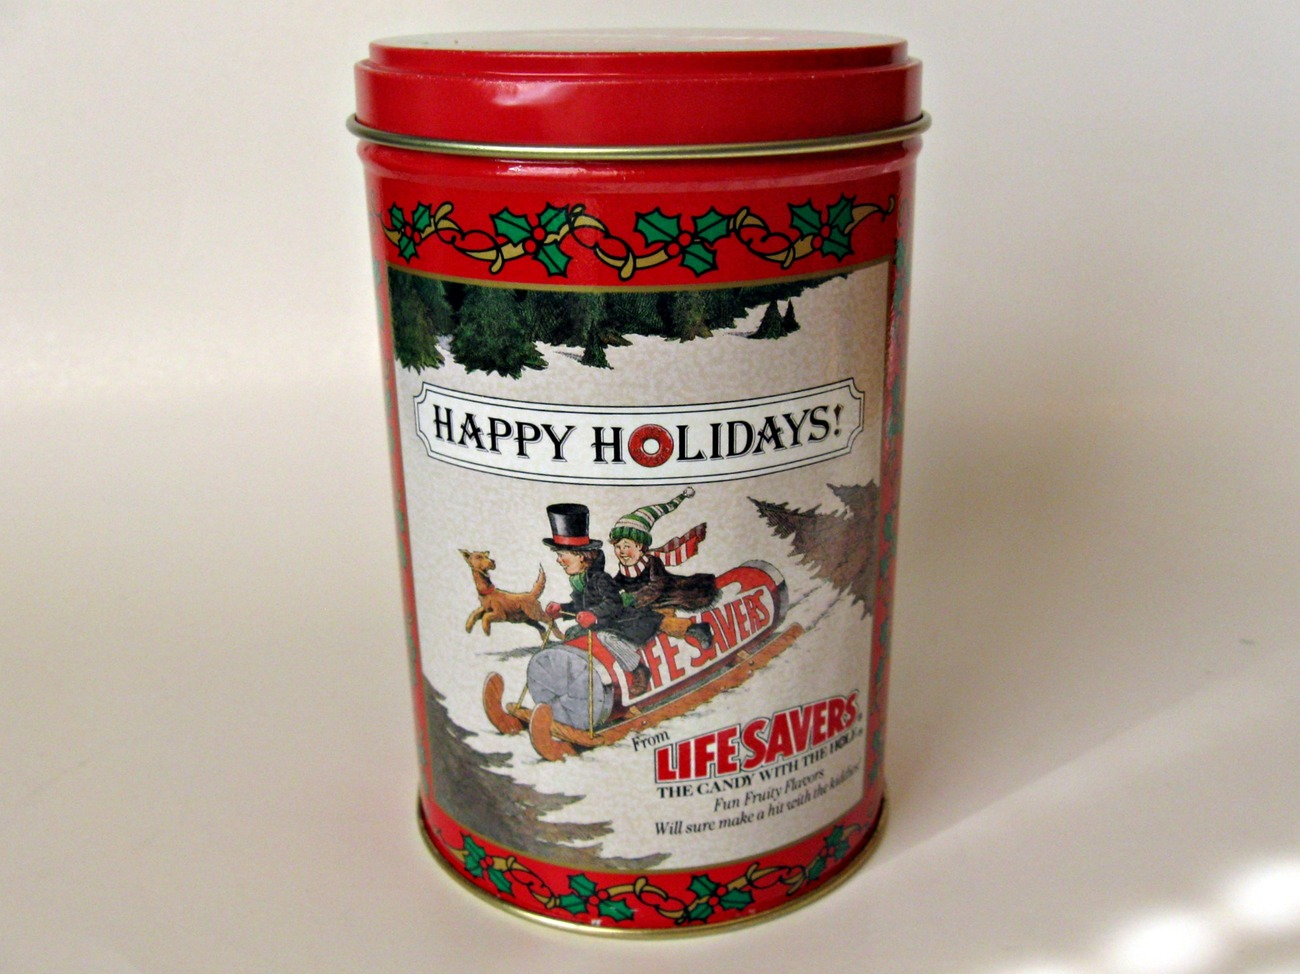 Vintage 1989 collectable Lifesavers tin with winter sledding scene.